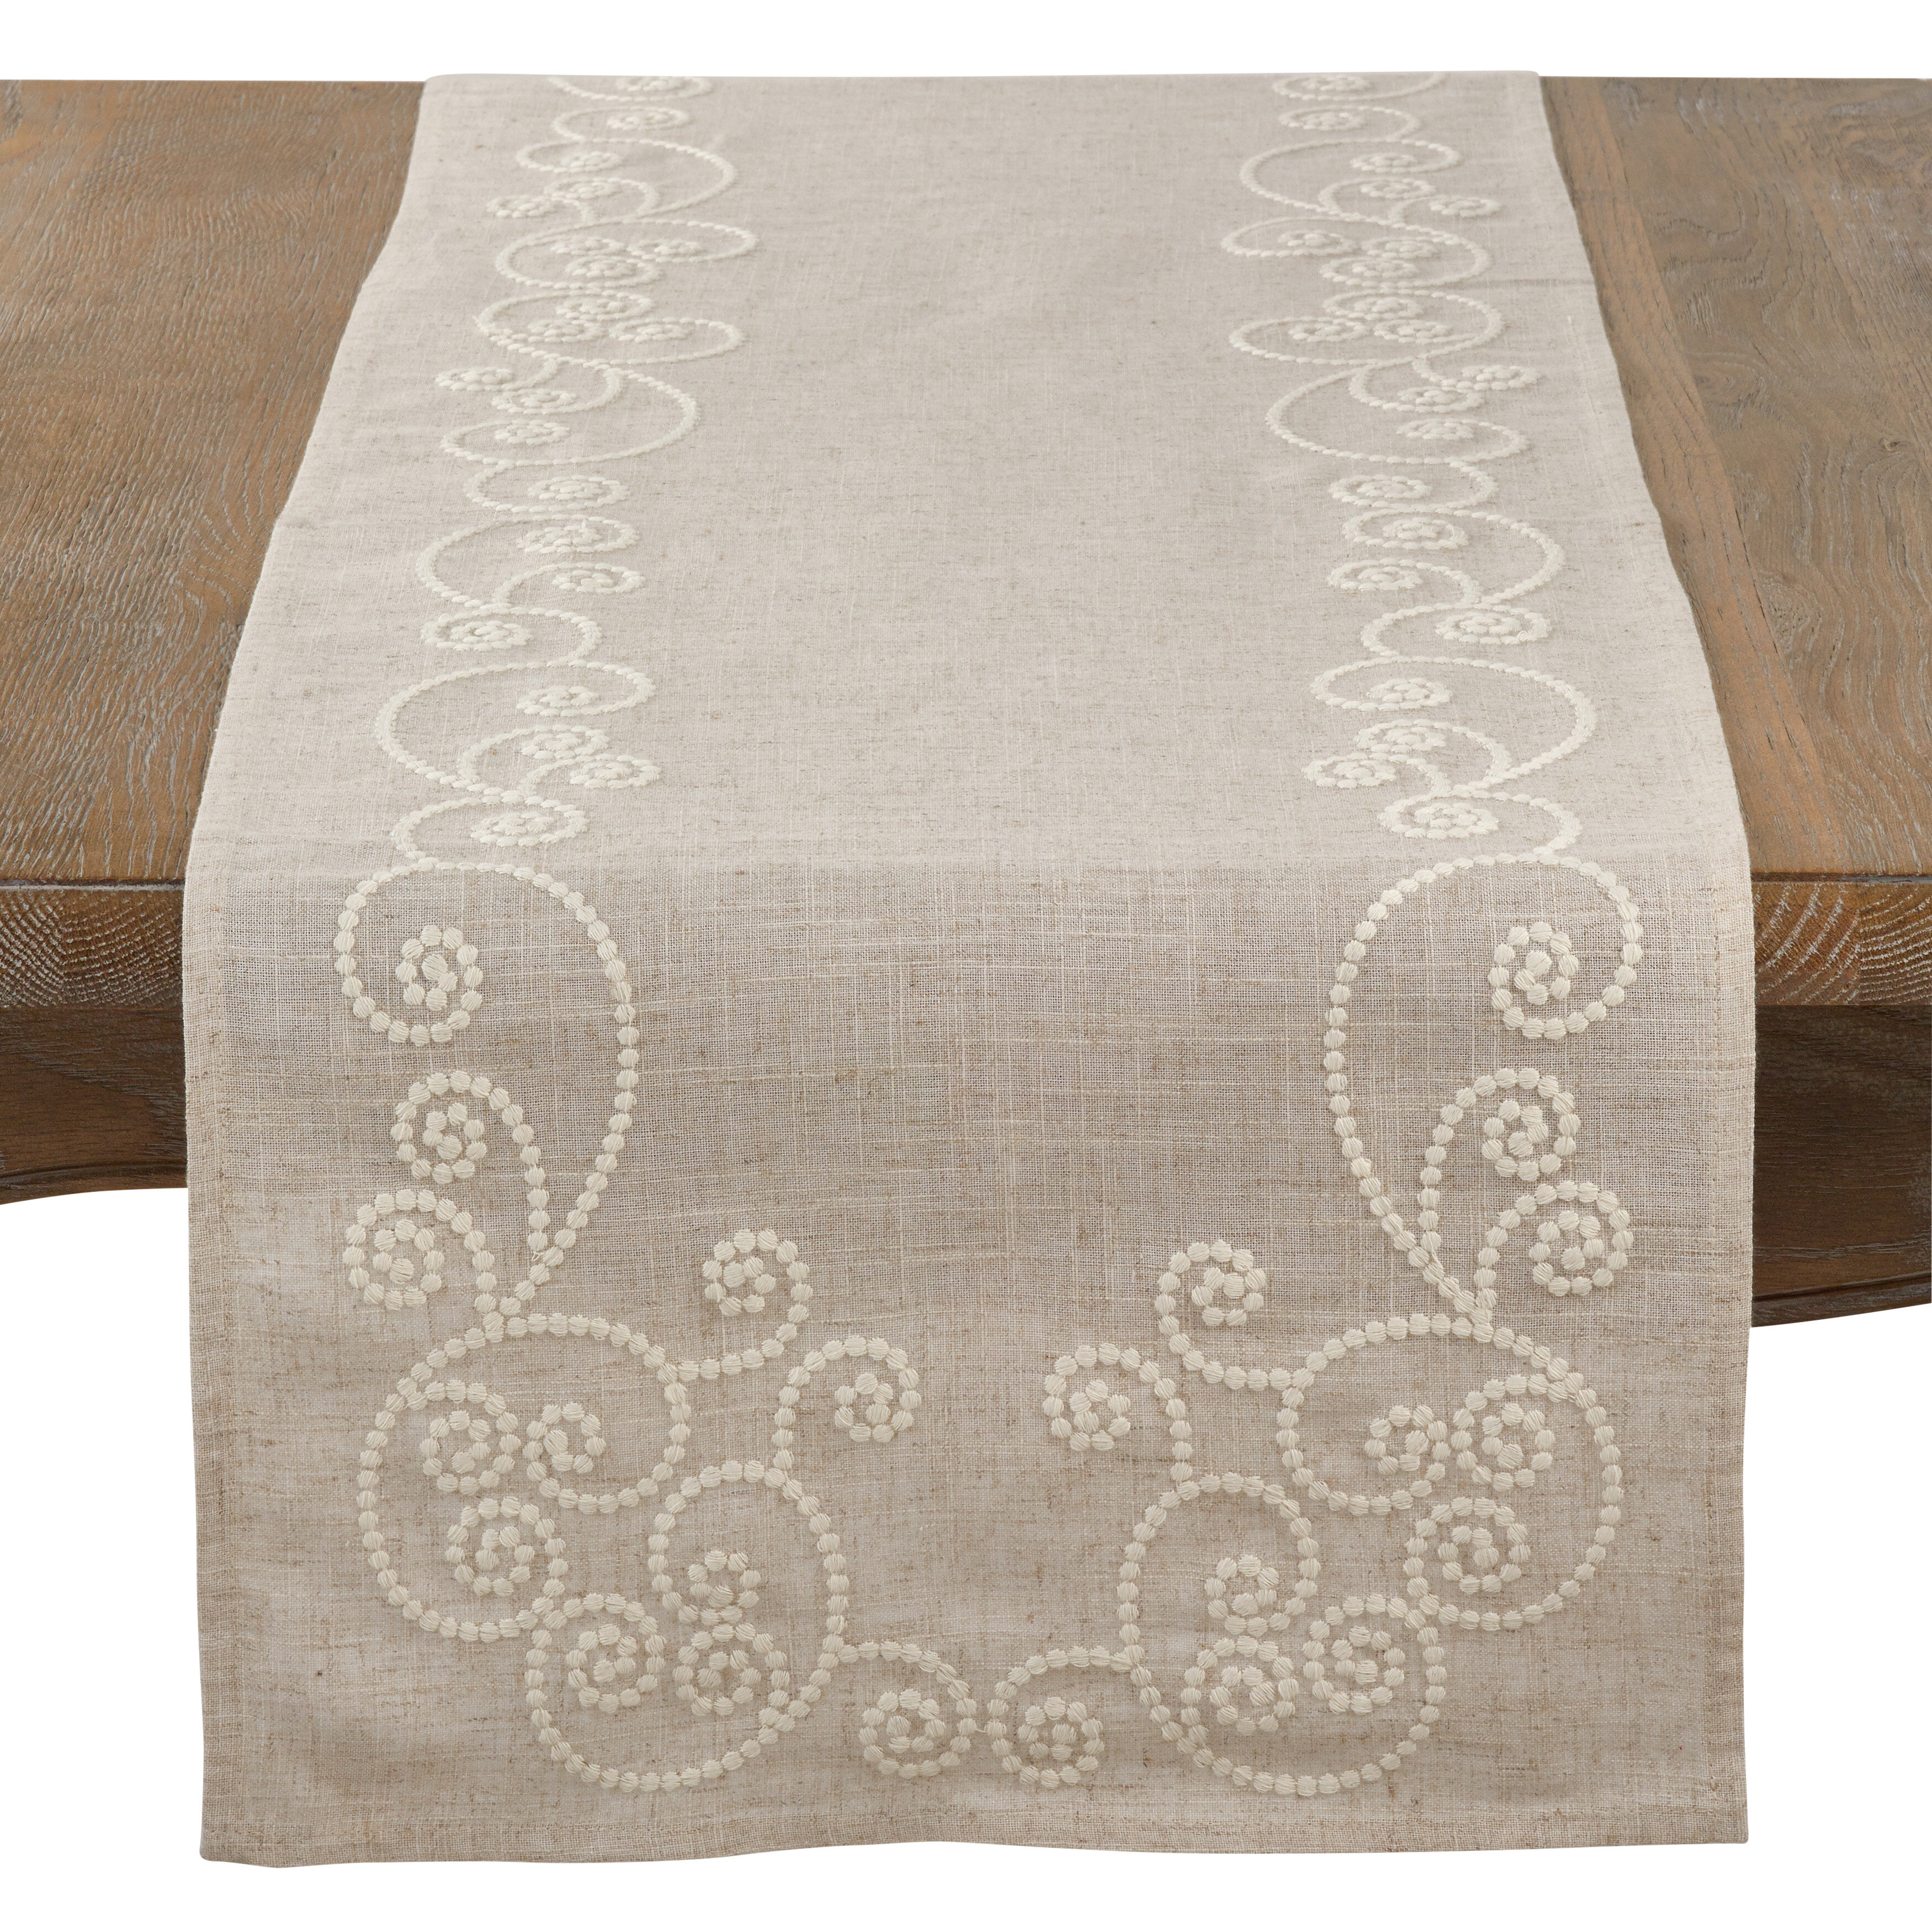 Cotton Linen Table Runner 14 X 72inch Merry Christmas Party